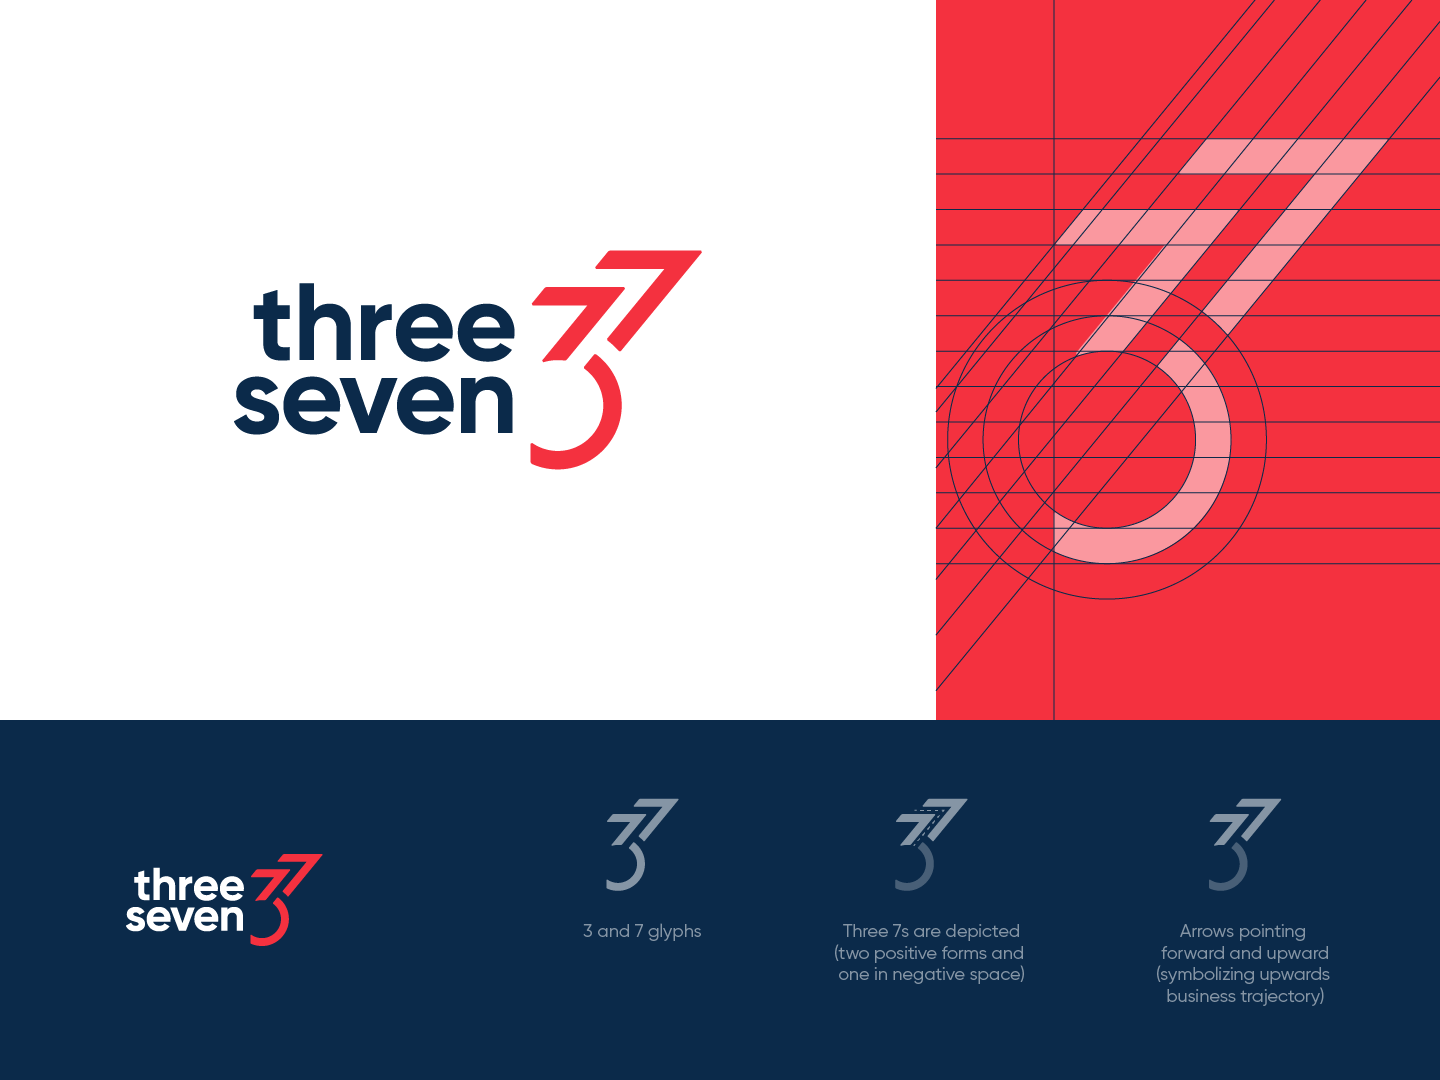 ThreeSeven Logo consulting firm logo consulting logo grid logo grids grid identity branding typography identity design logo designer logo design design brand design brand branding branding and identity